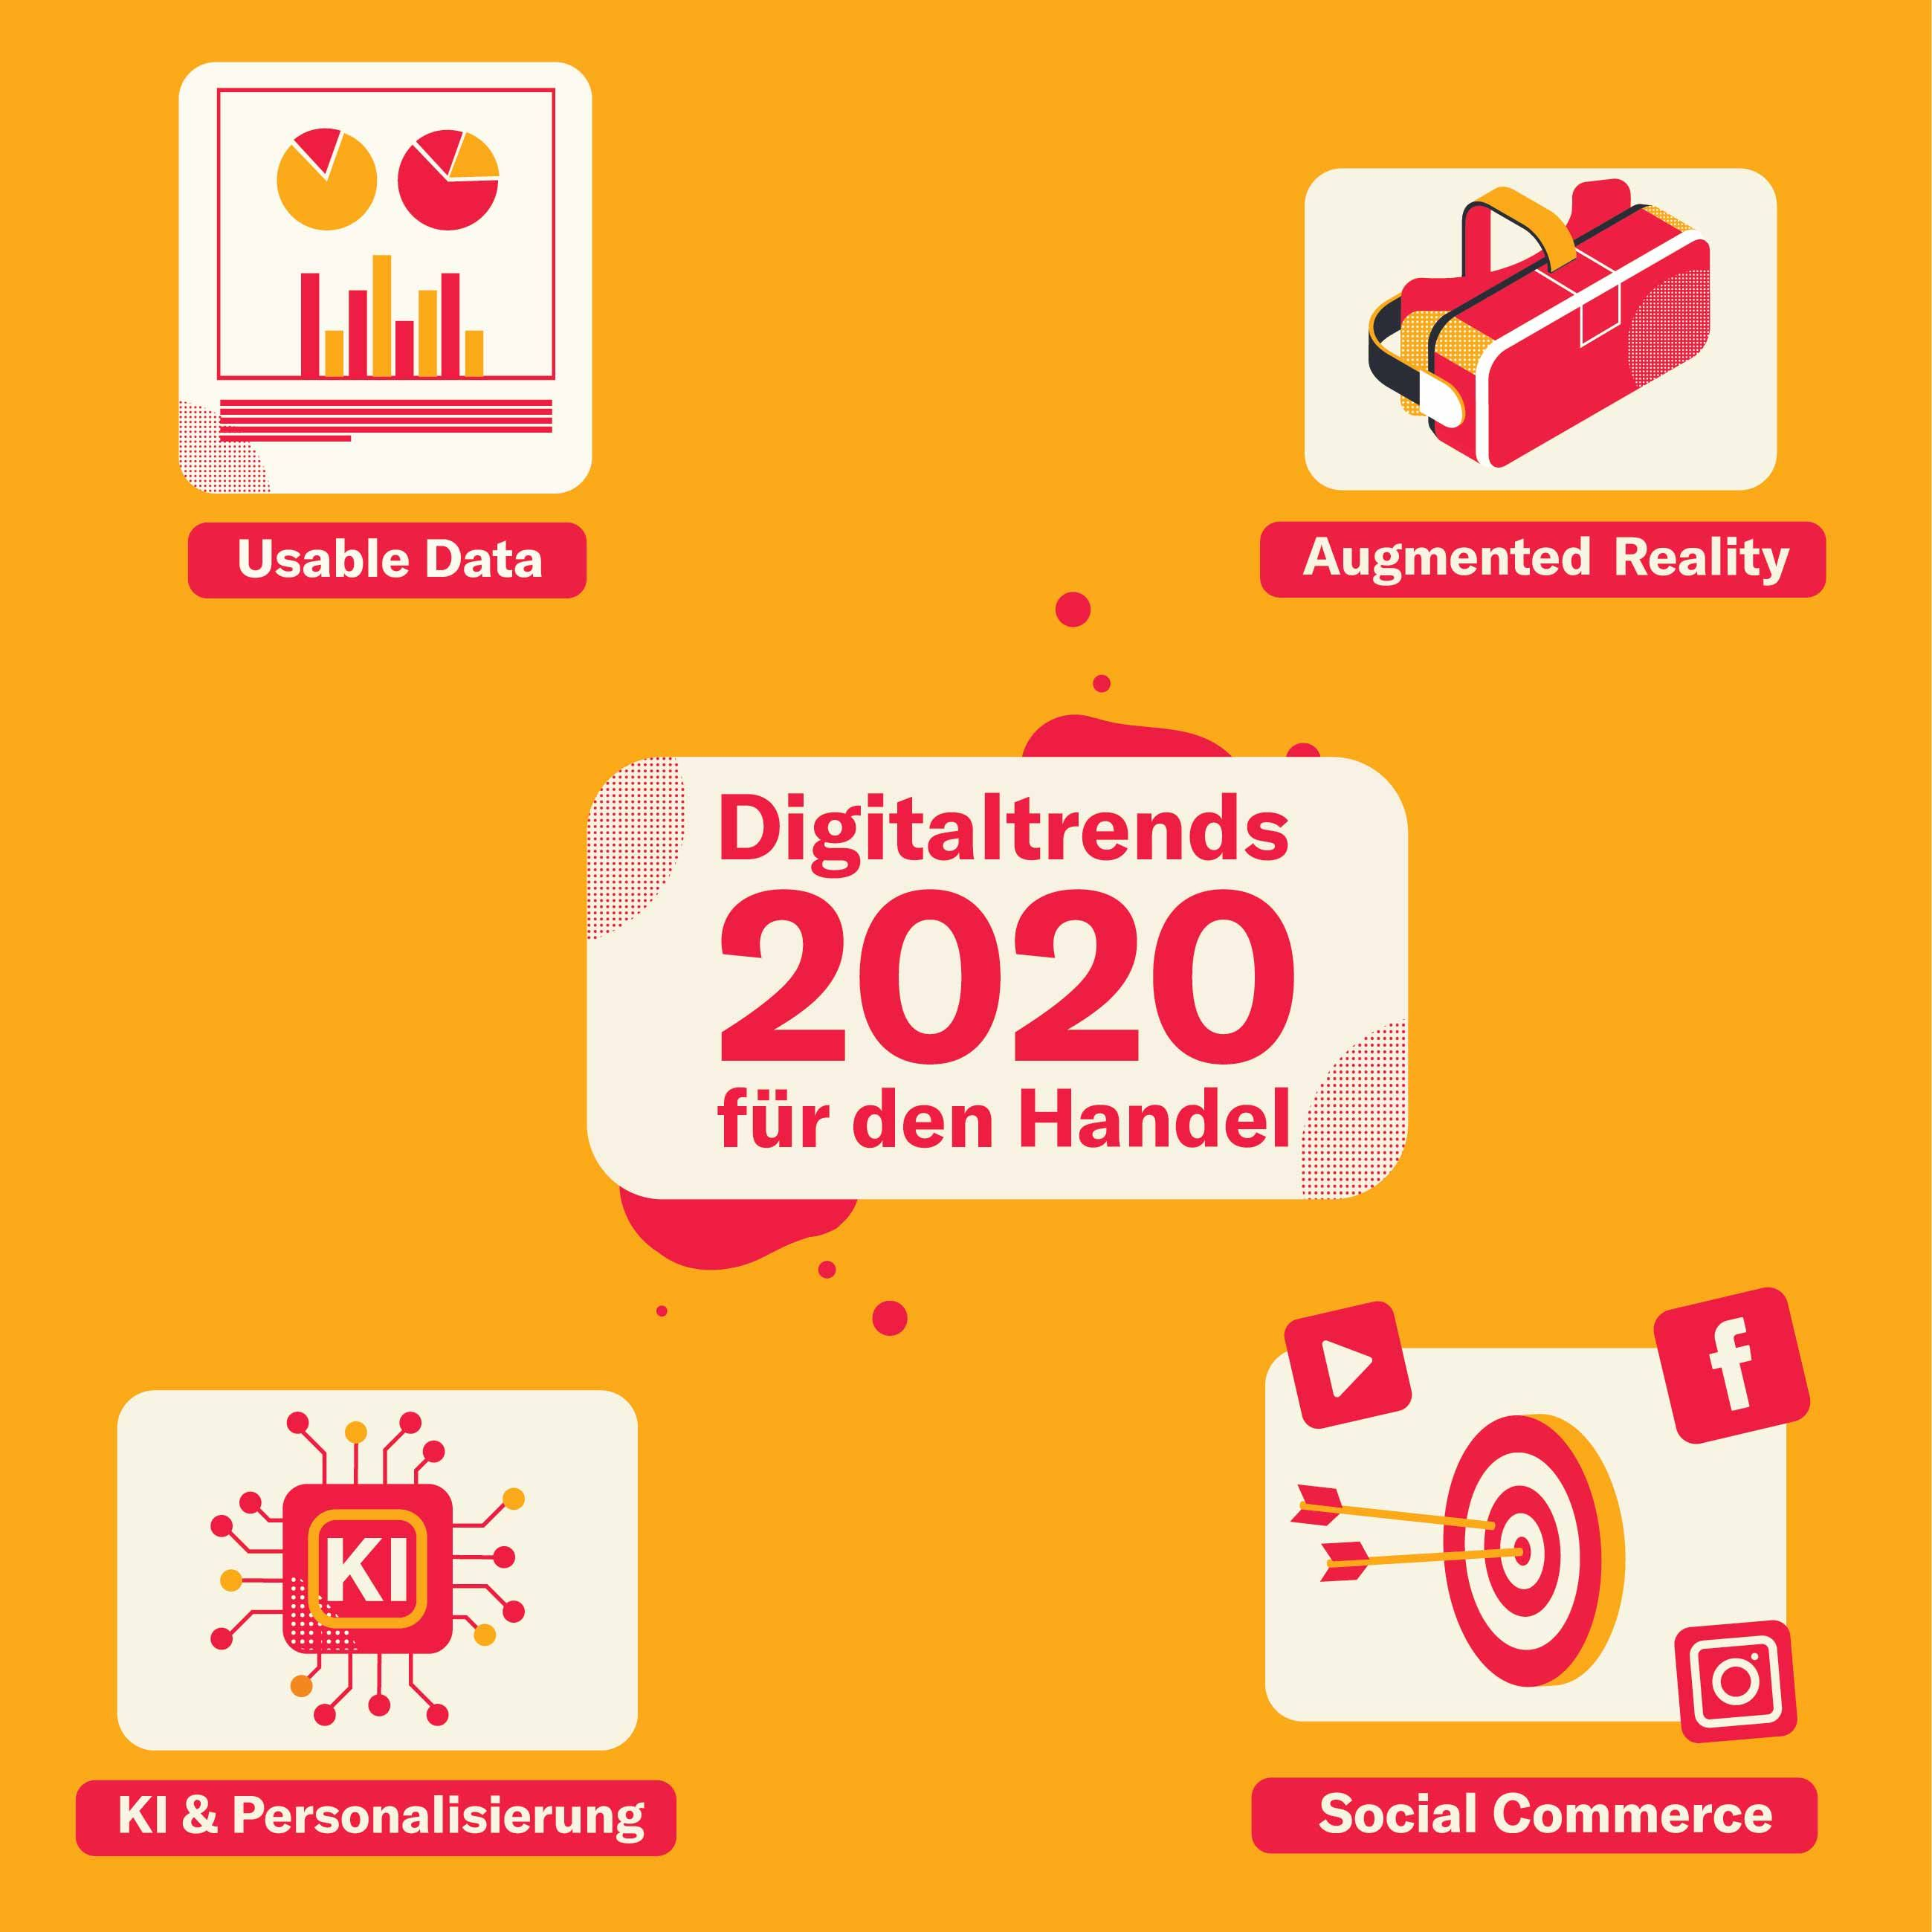 Digitale Trends im Handel 2020